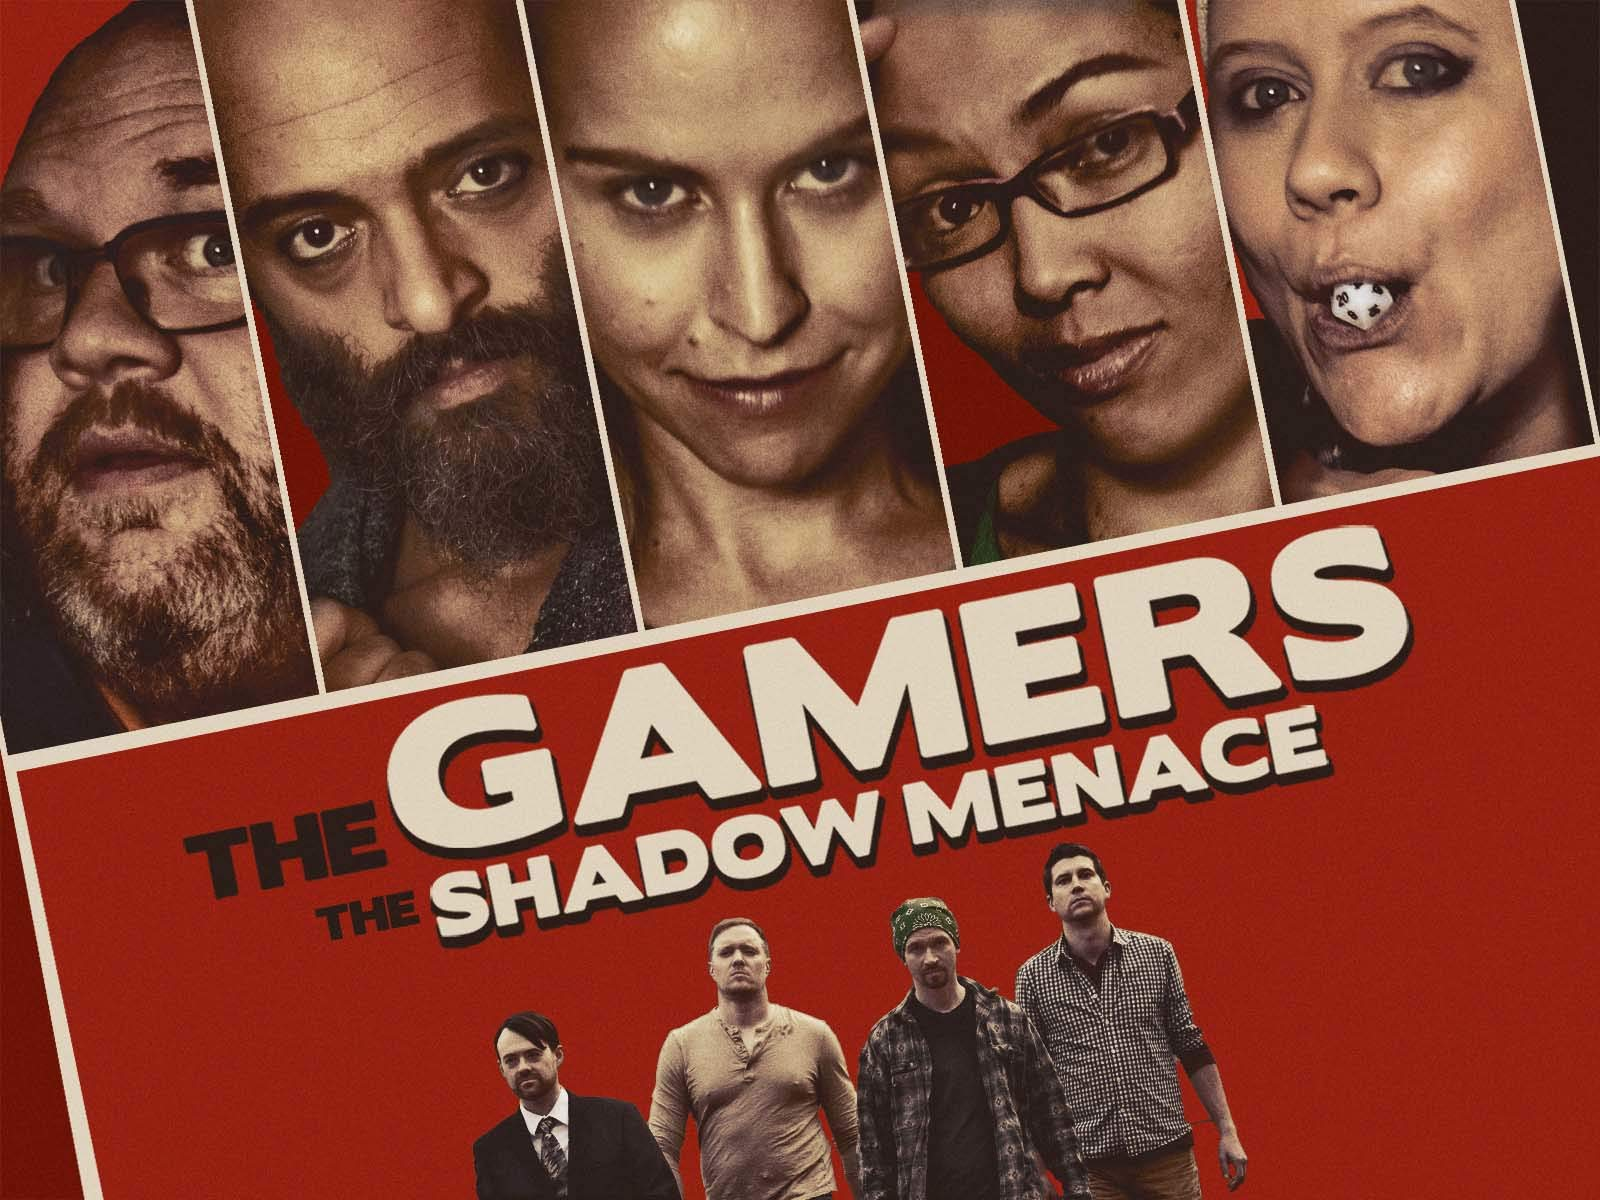 The Gamers Universe page launching on The Fantasy Network